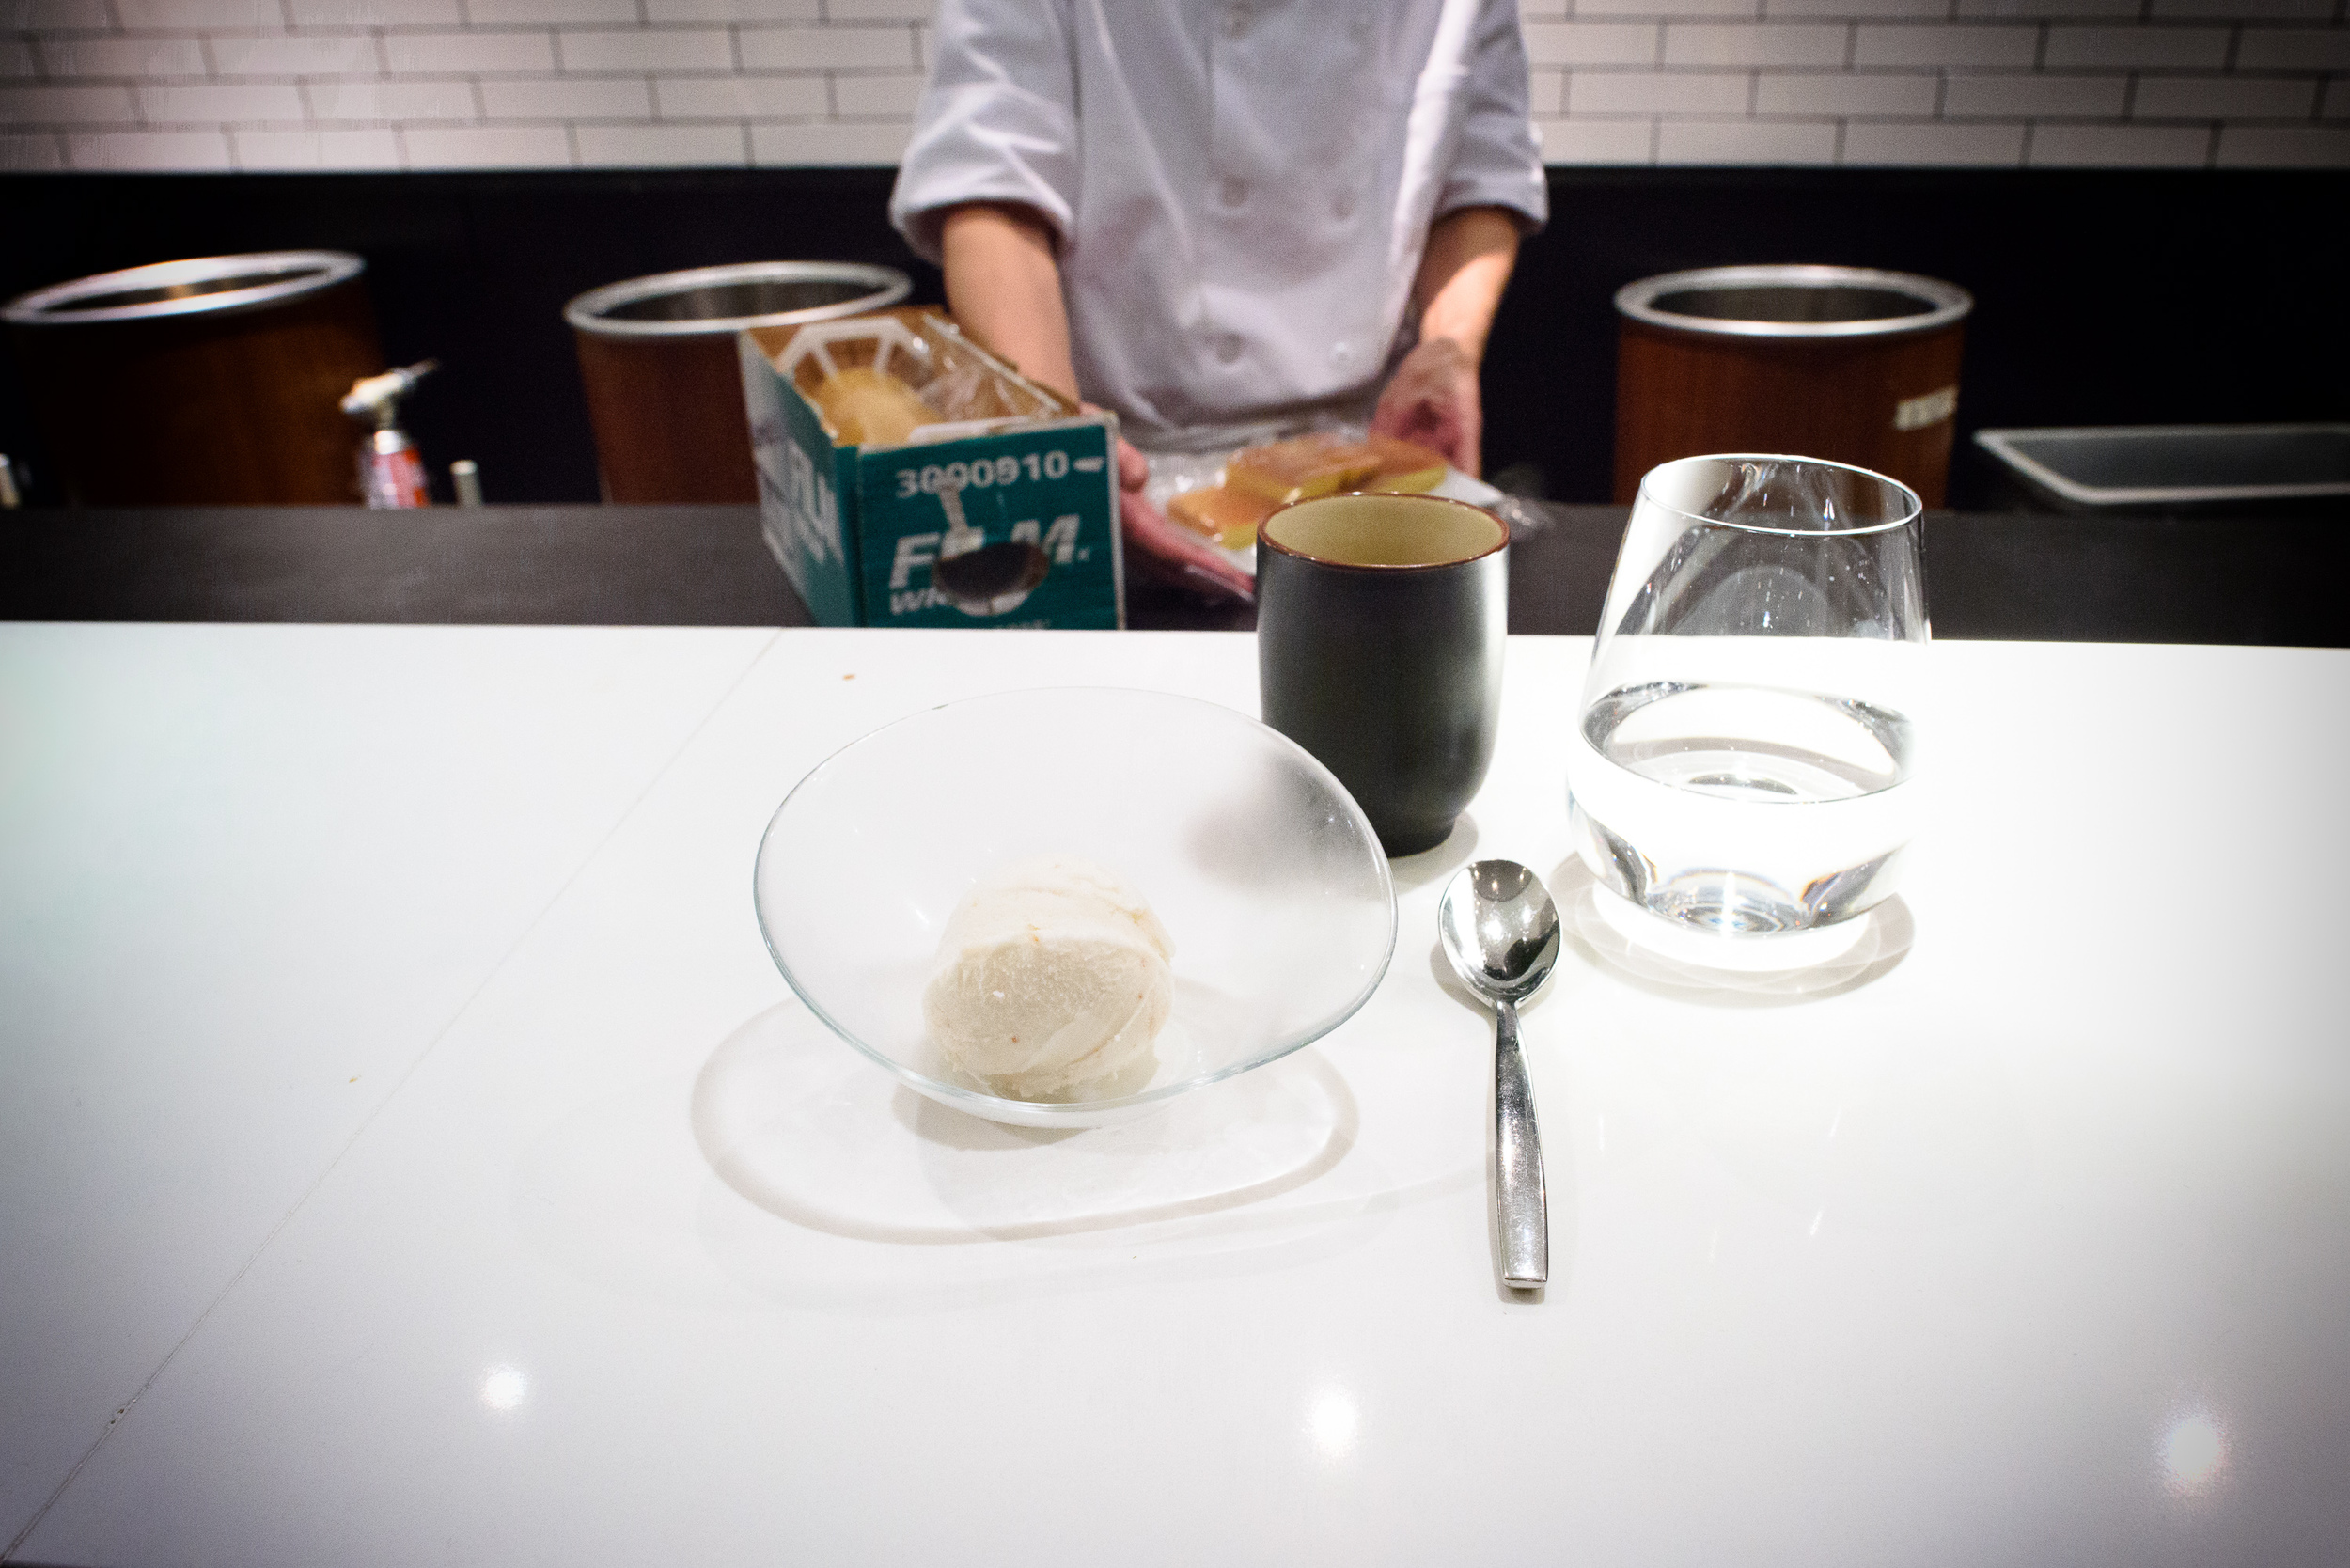 22nd Course: Lychee Ice Cream